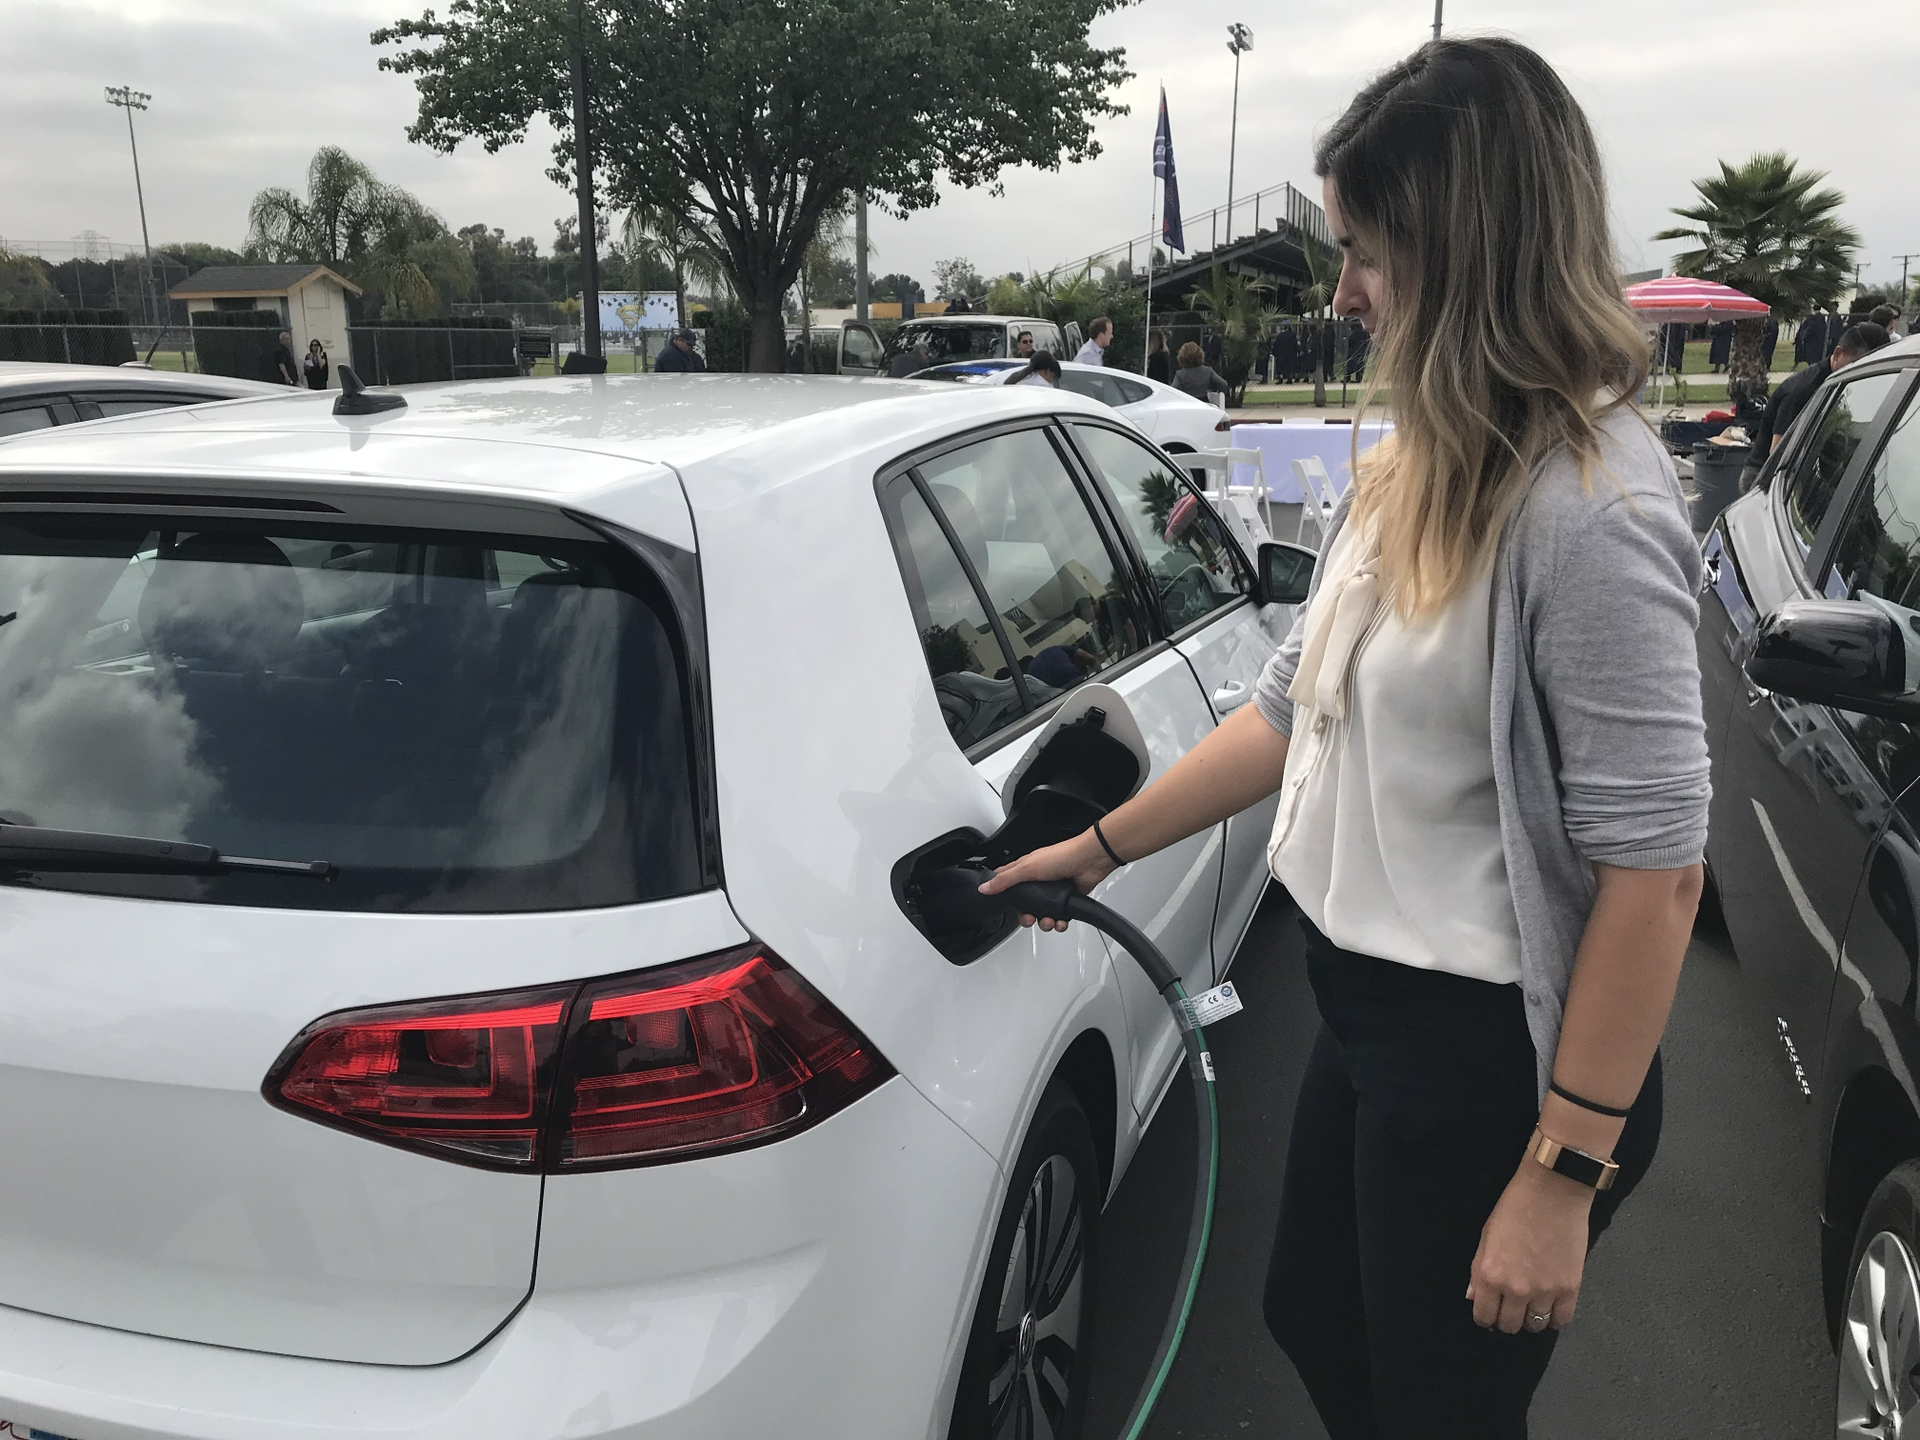 Customers who purchase or lease a new or used all-electric or plug-in hybrid vehicle can receive a $1,000 Clean Fuel Reward rebate until Dec. 31.